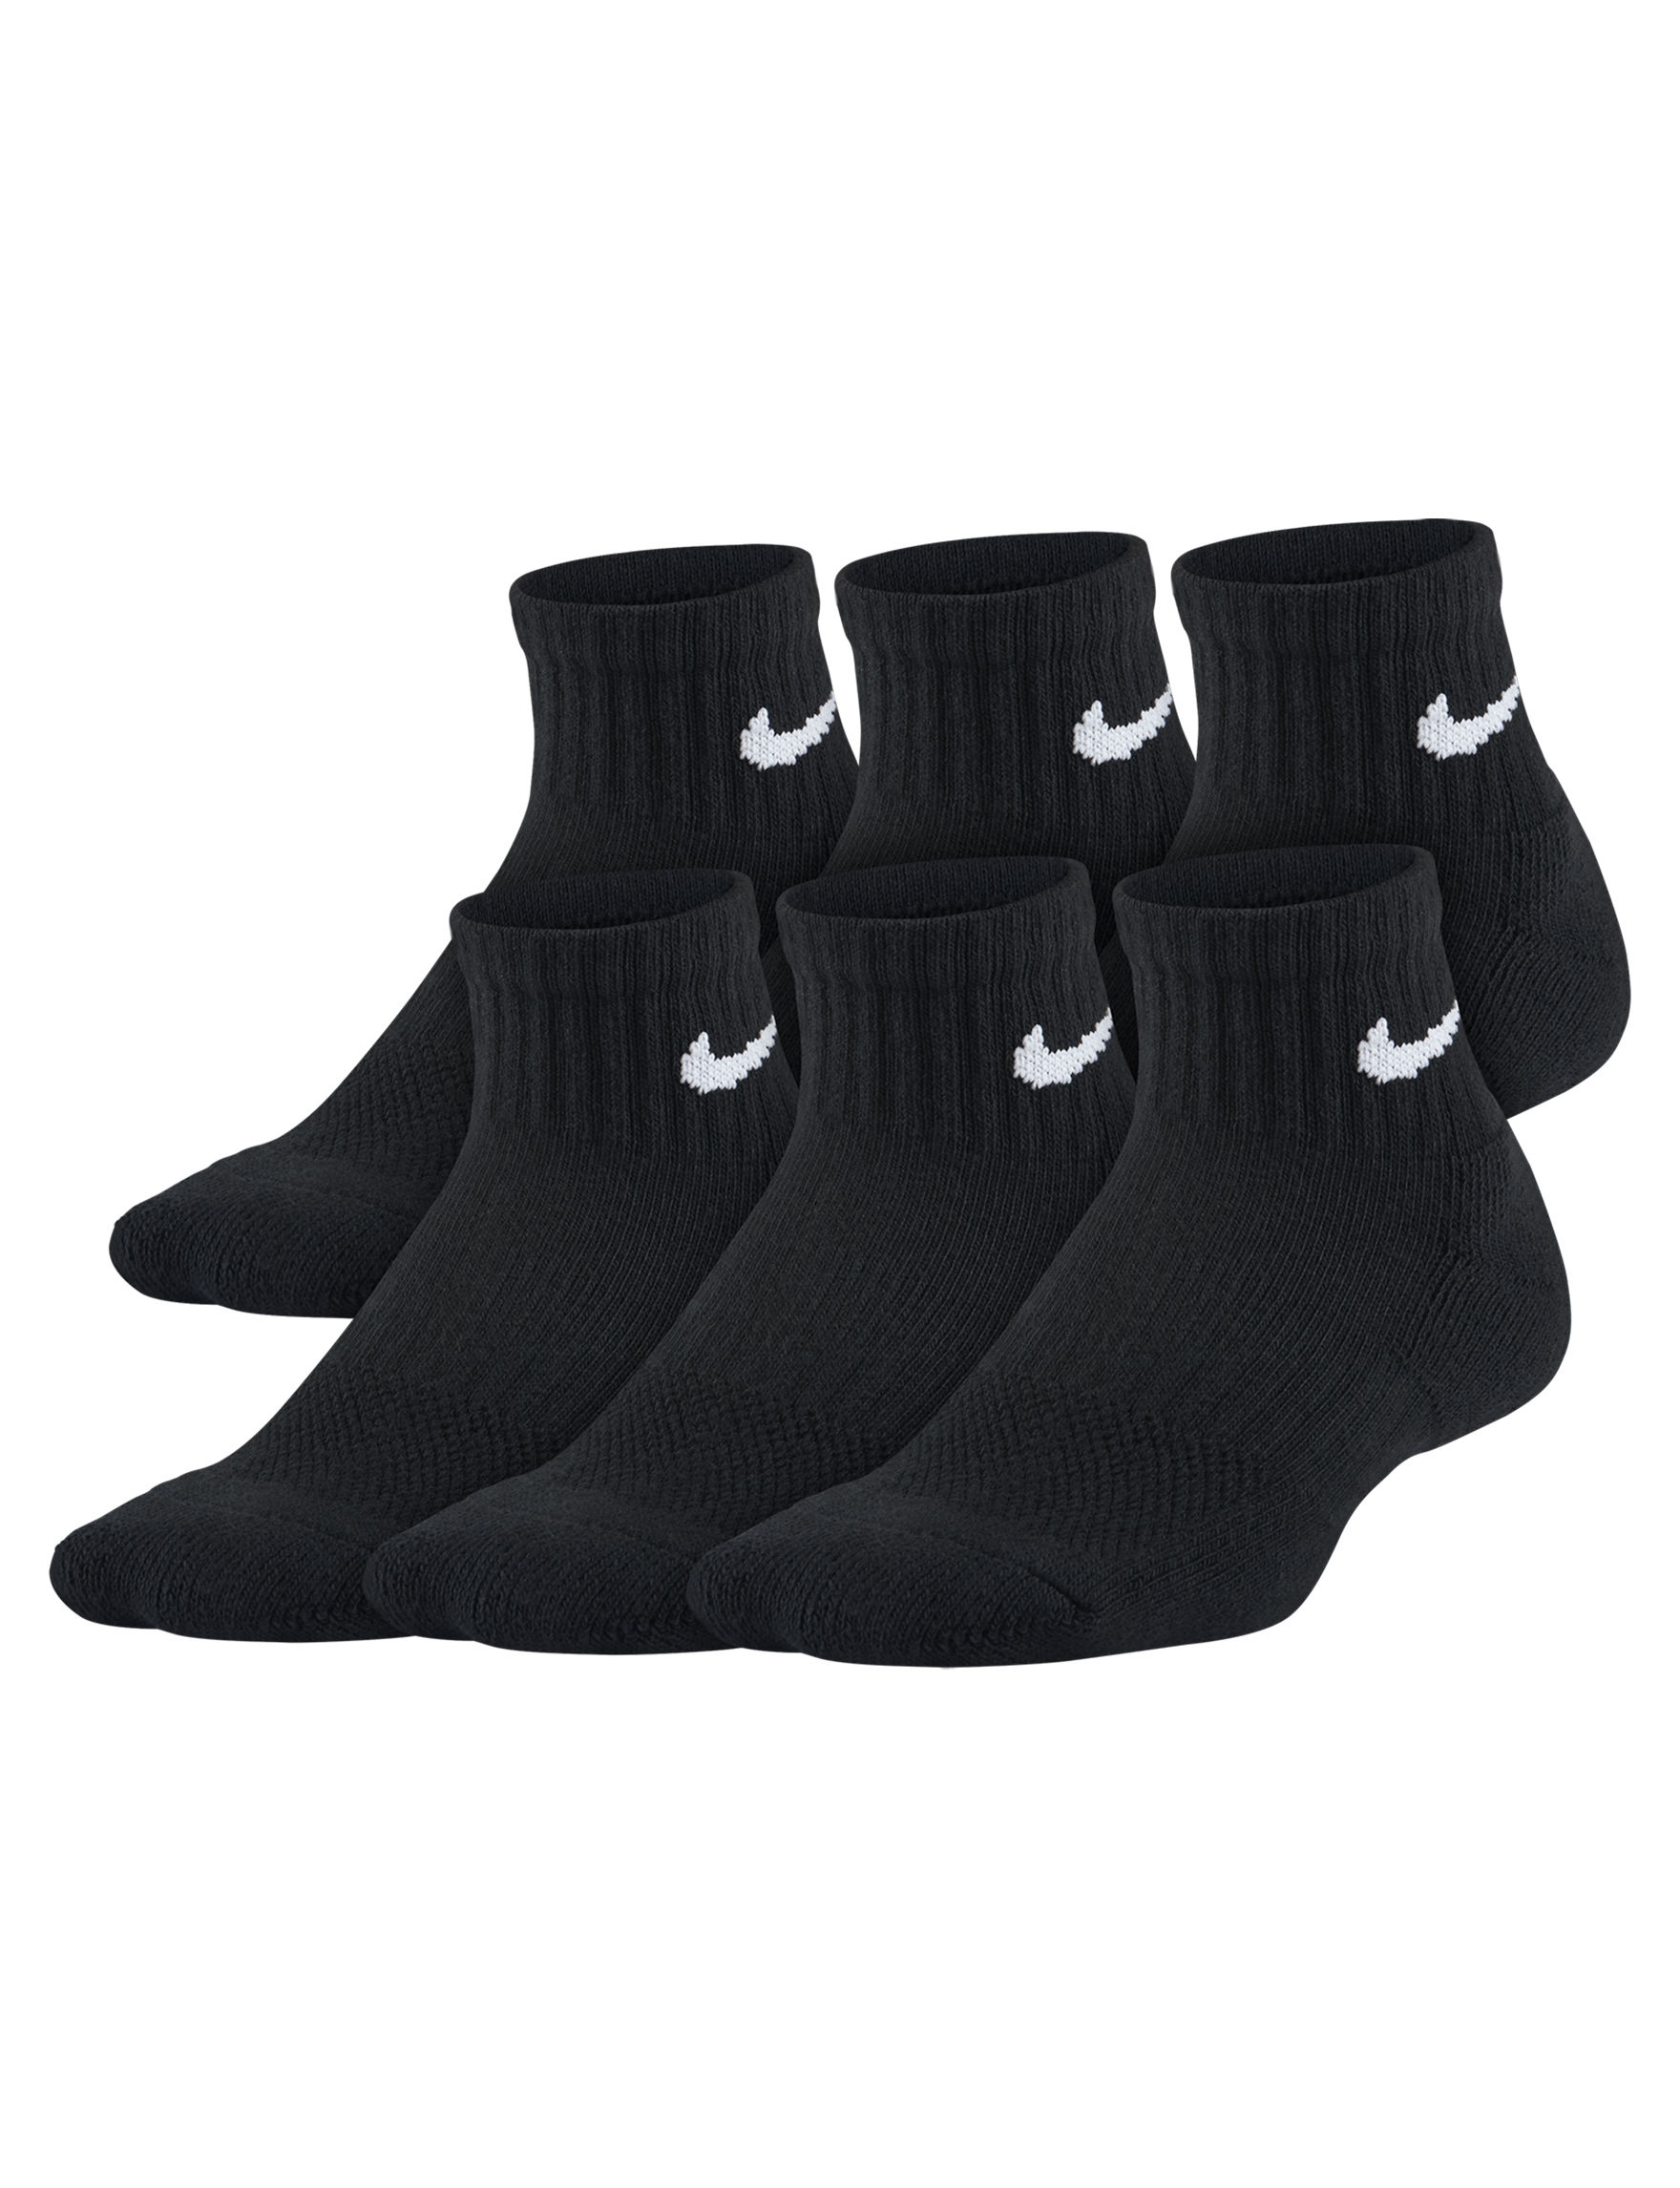 Nike Black Socks